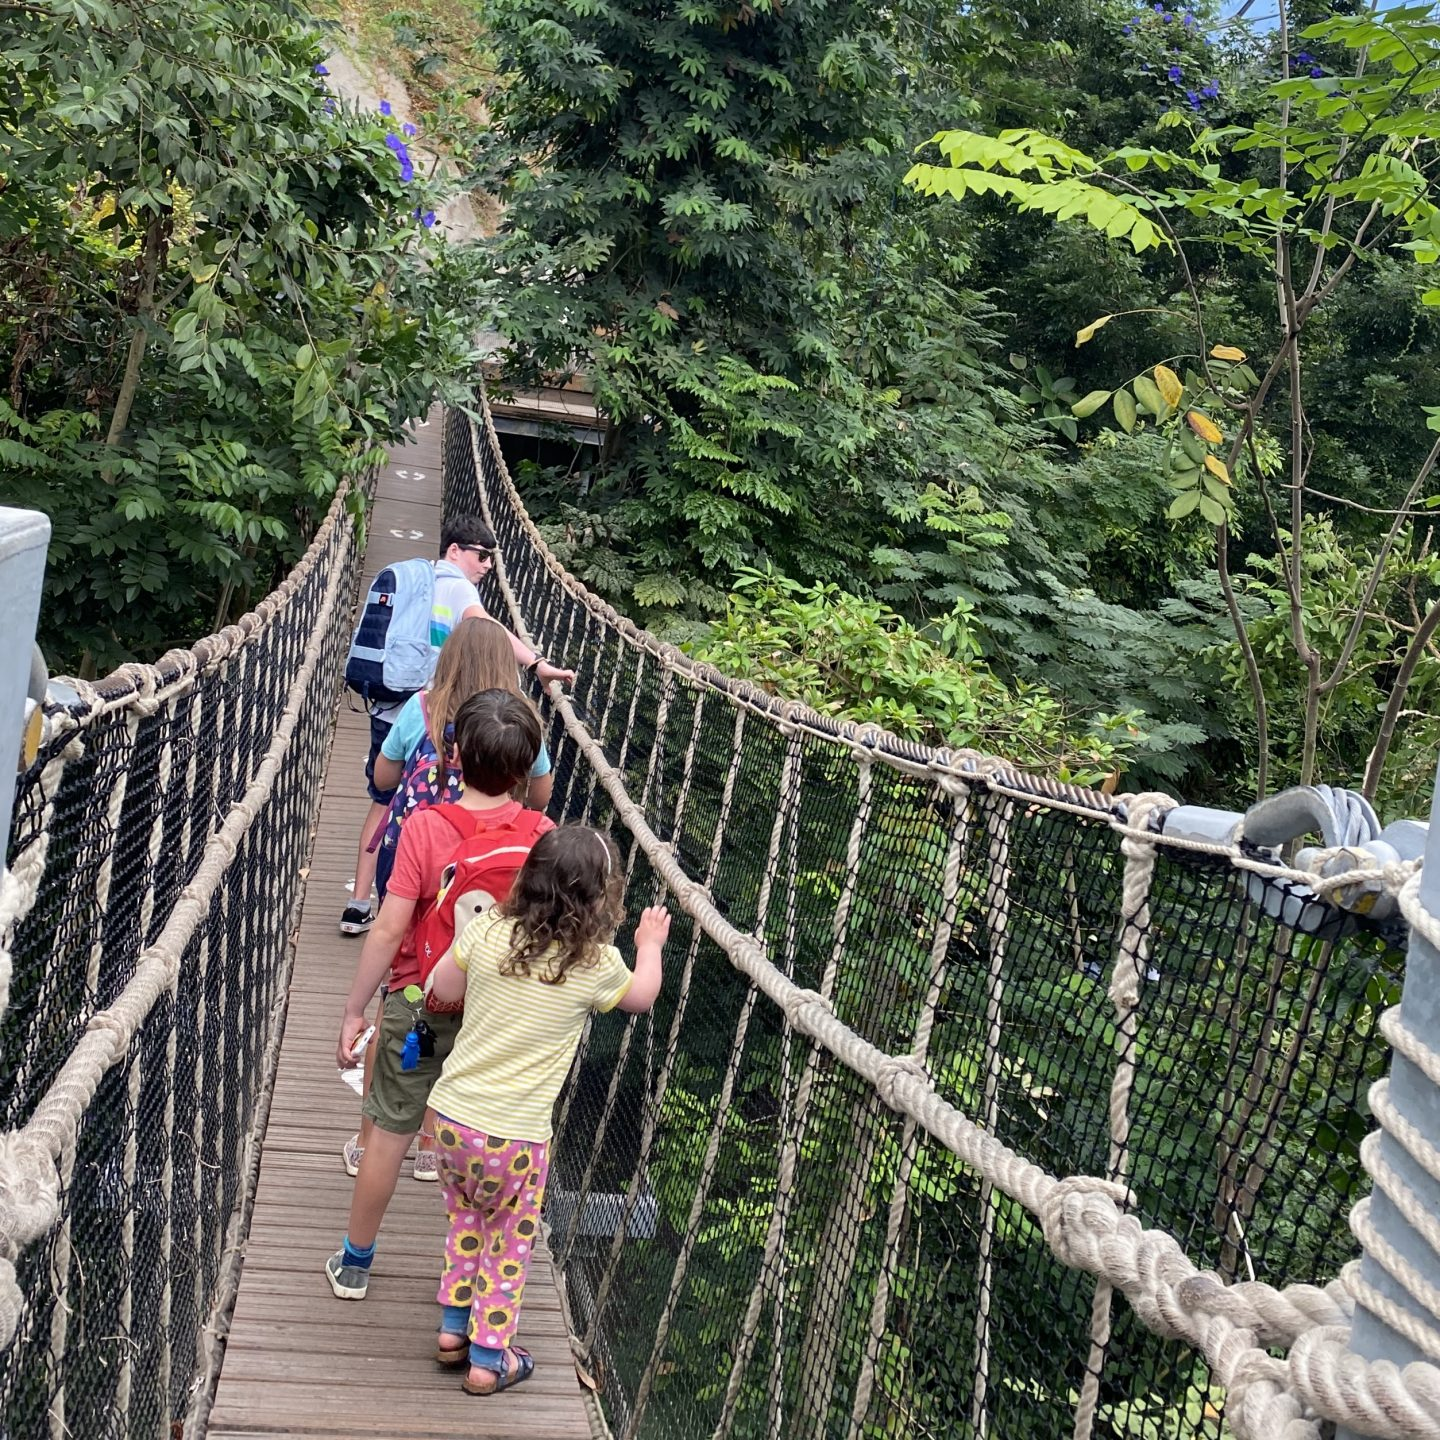 Eden project rainforest biome with 4 children walking the rope bridge